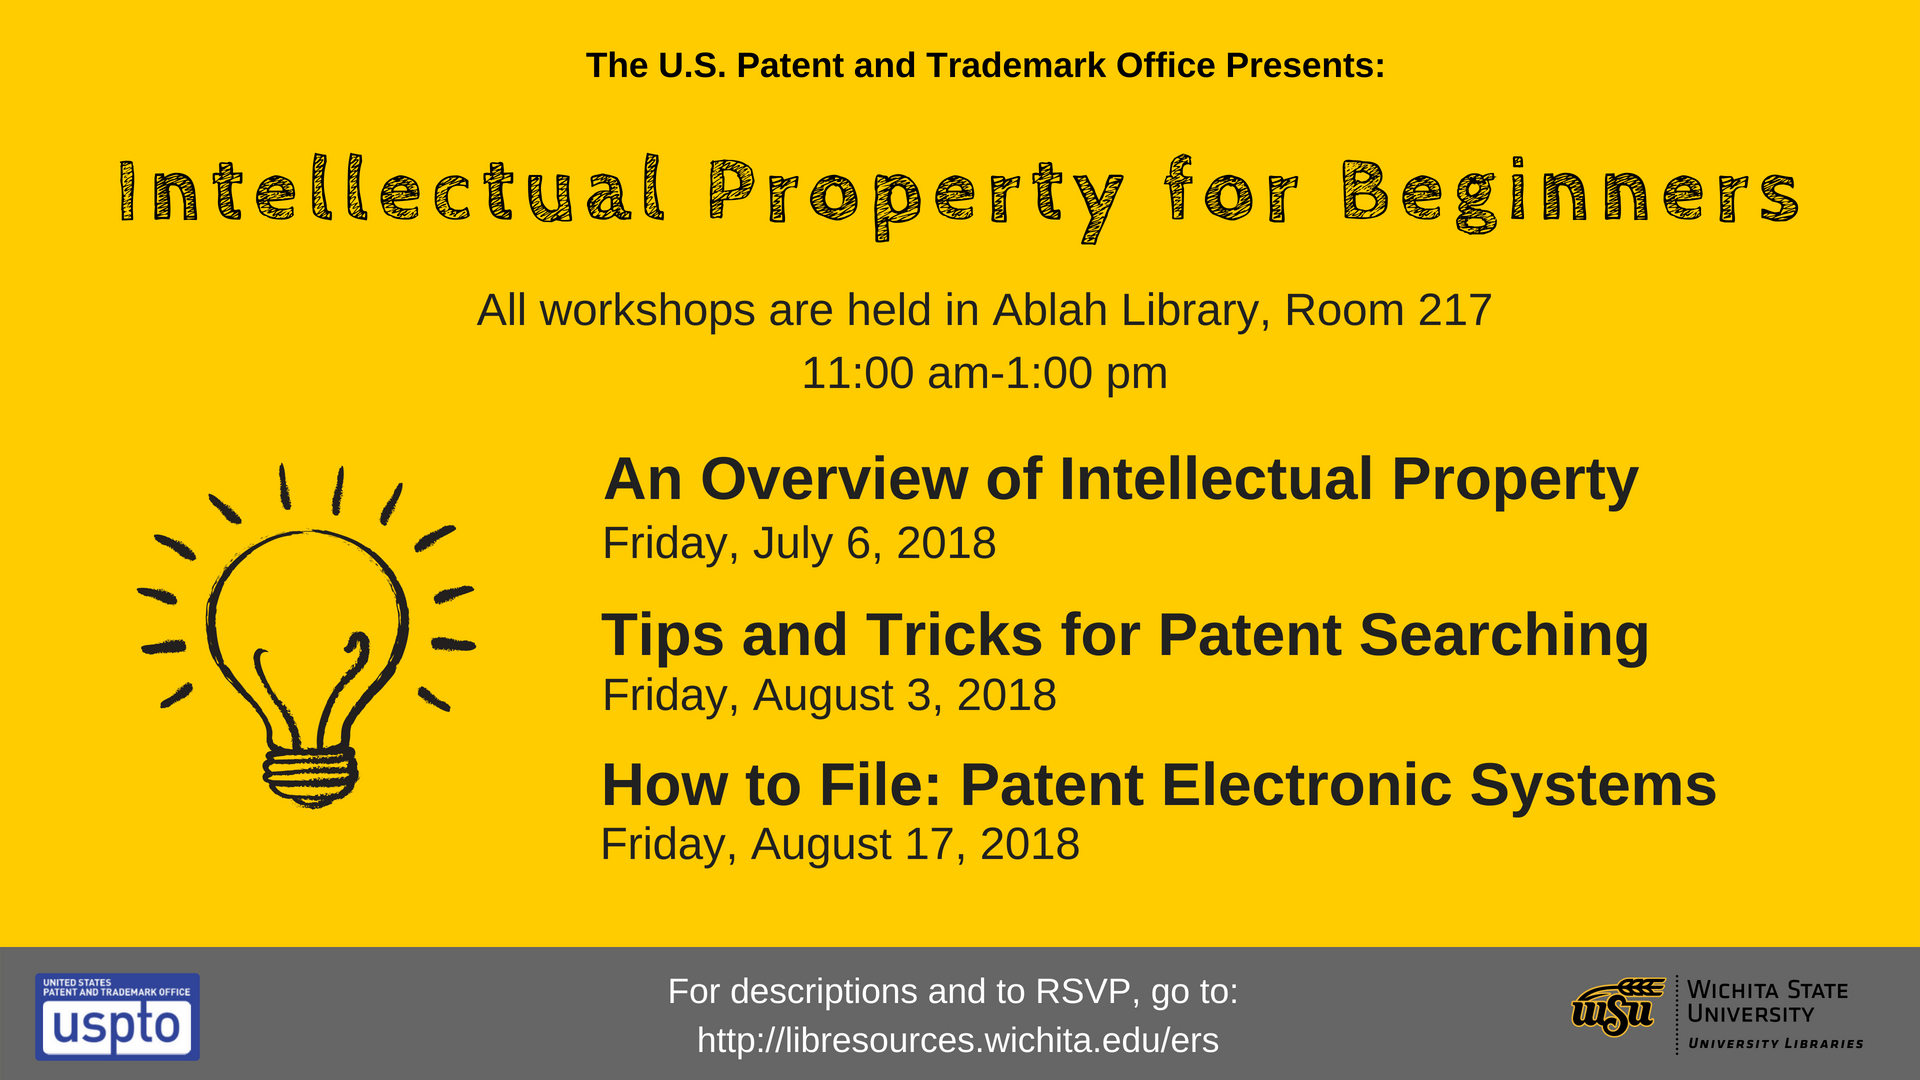 How to File: Patent Electronic Systems